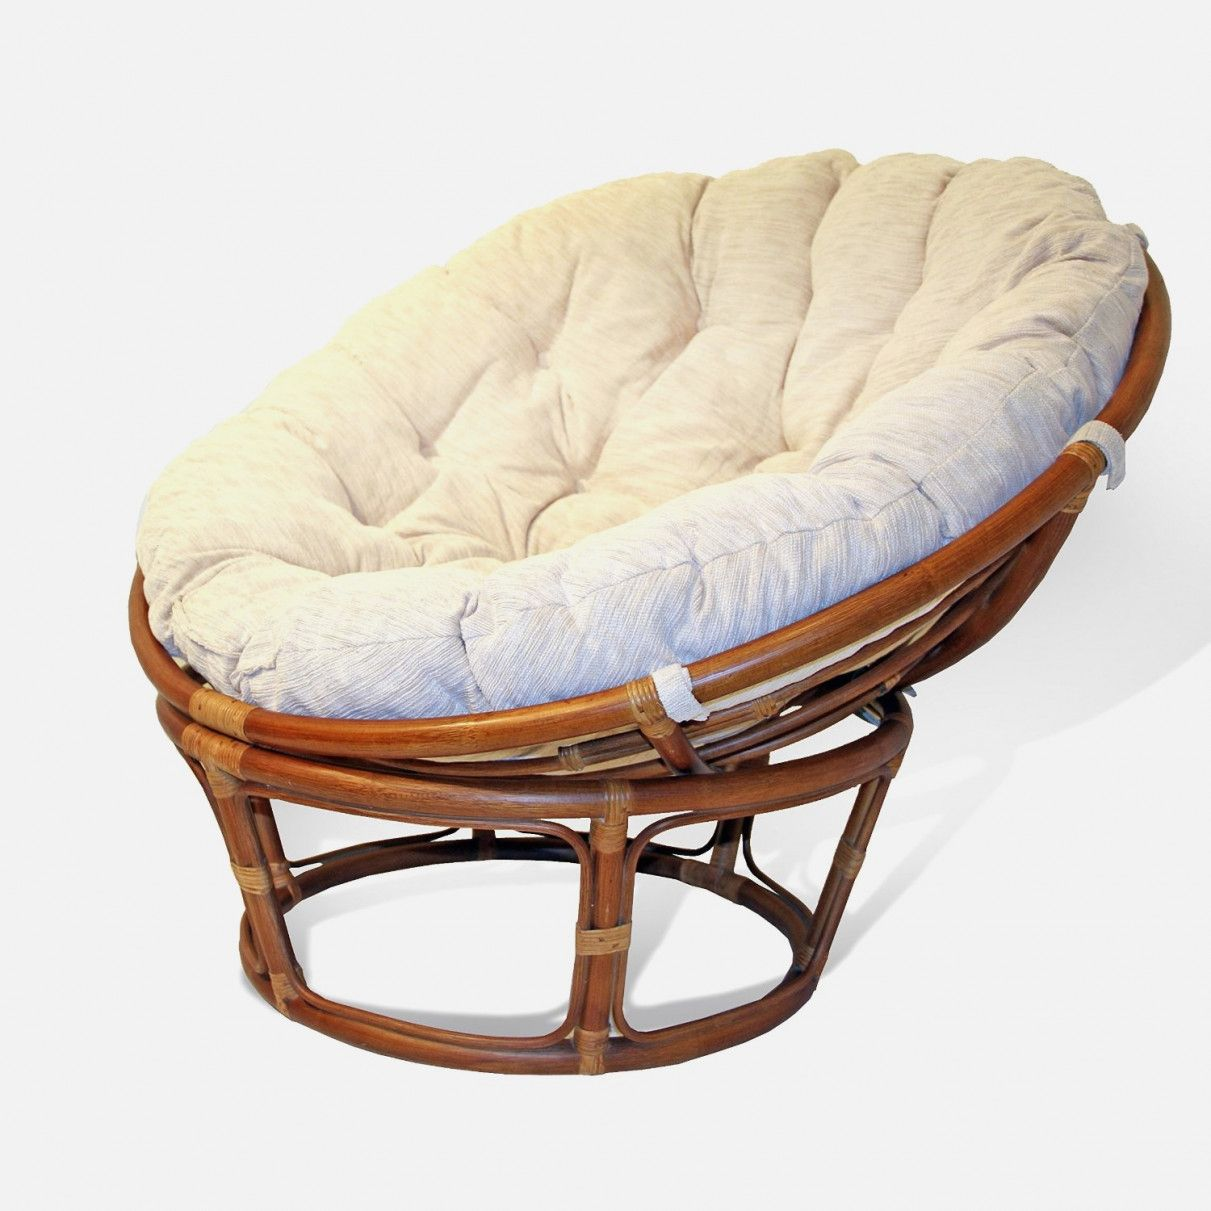 Big Round Chairs Chair Cover Hire Gumtree Pin By Neby On House Plans Ideas Cushions Bamboo Home Office Furniture Check More At Http